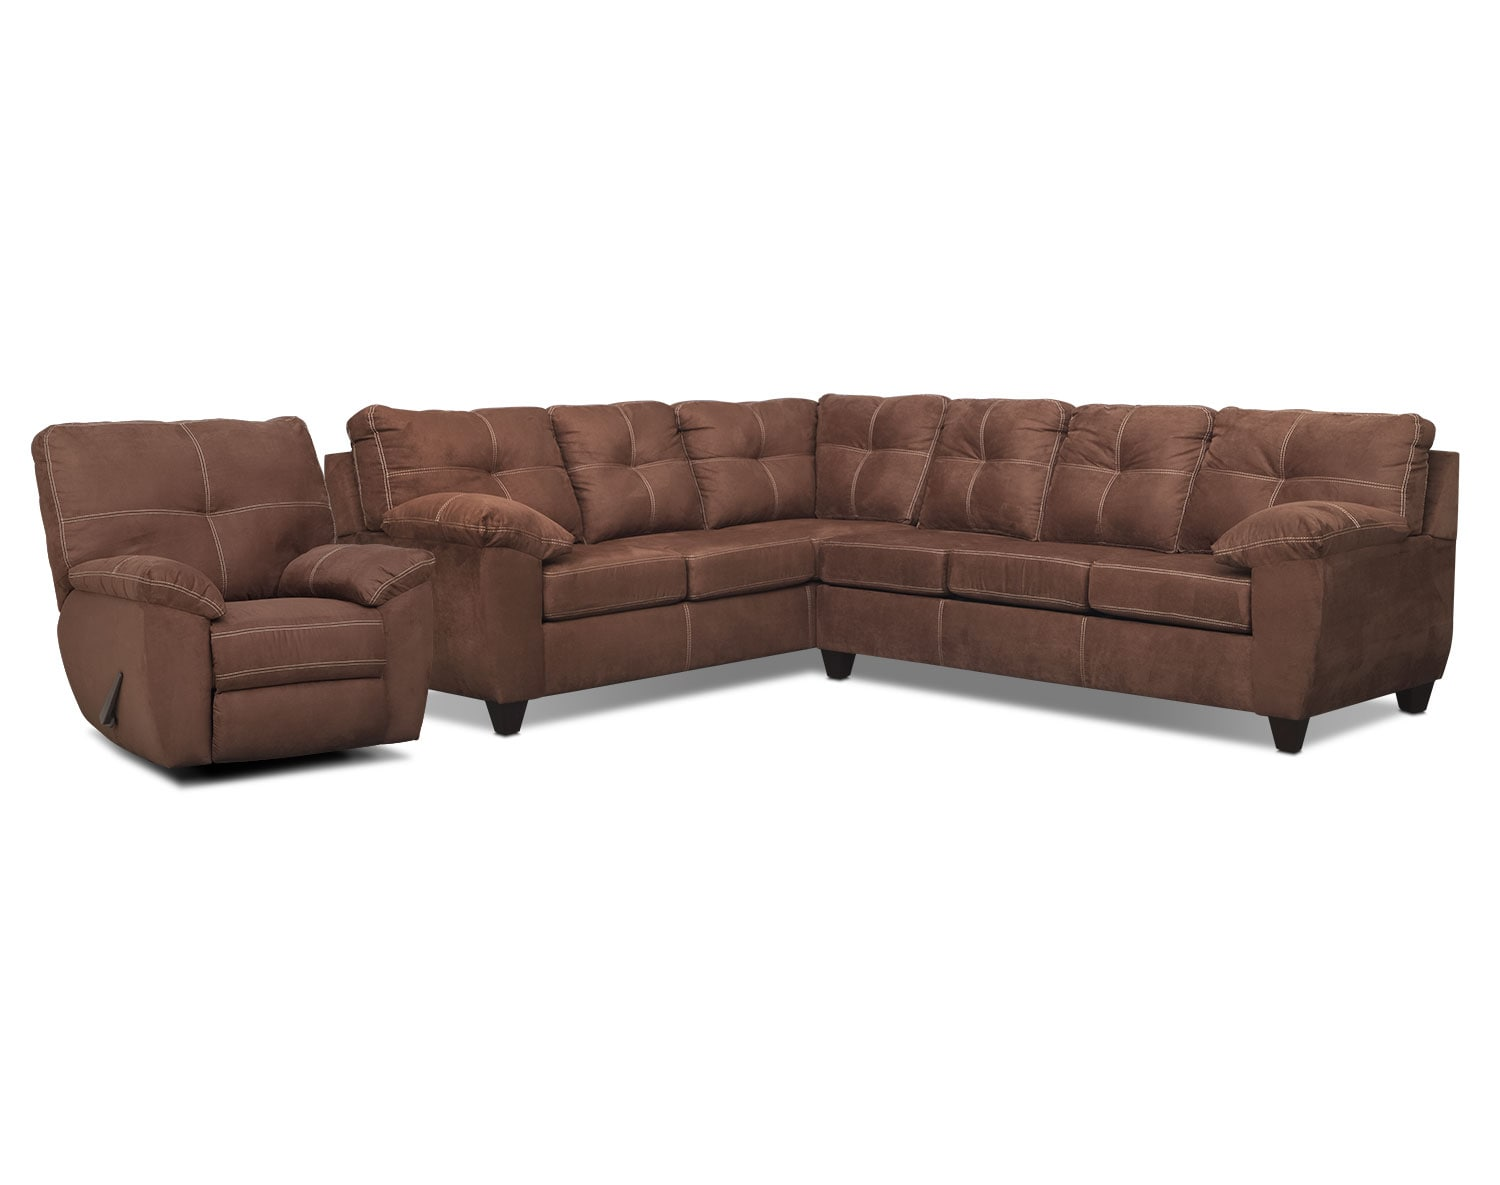 The Rialto Sectional Collection - Coffee